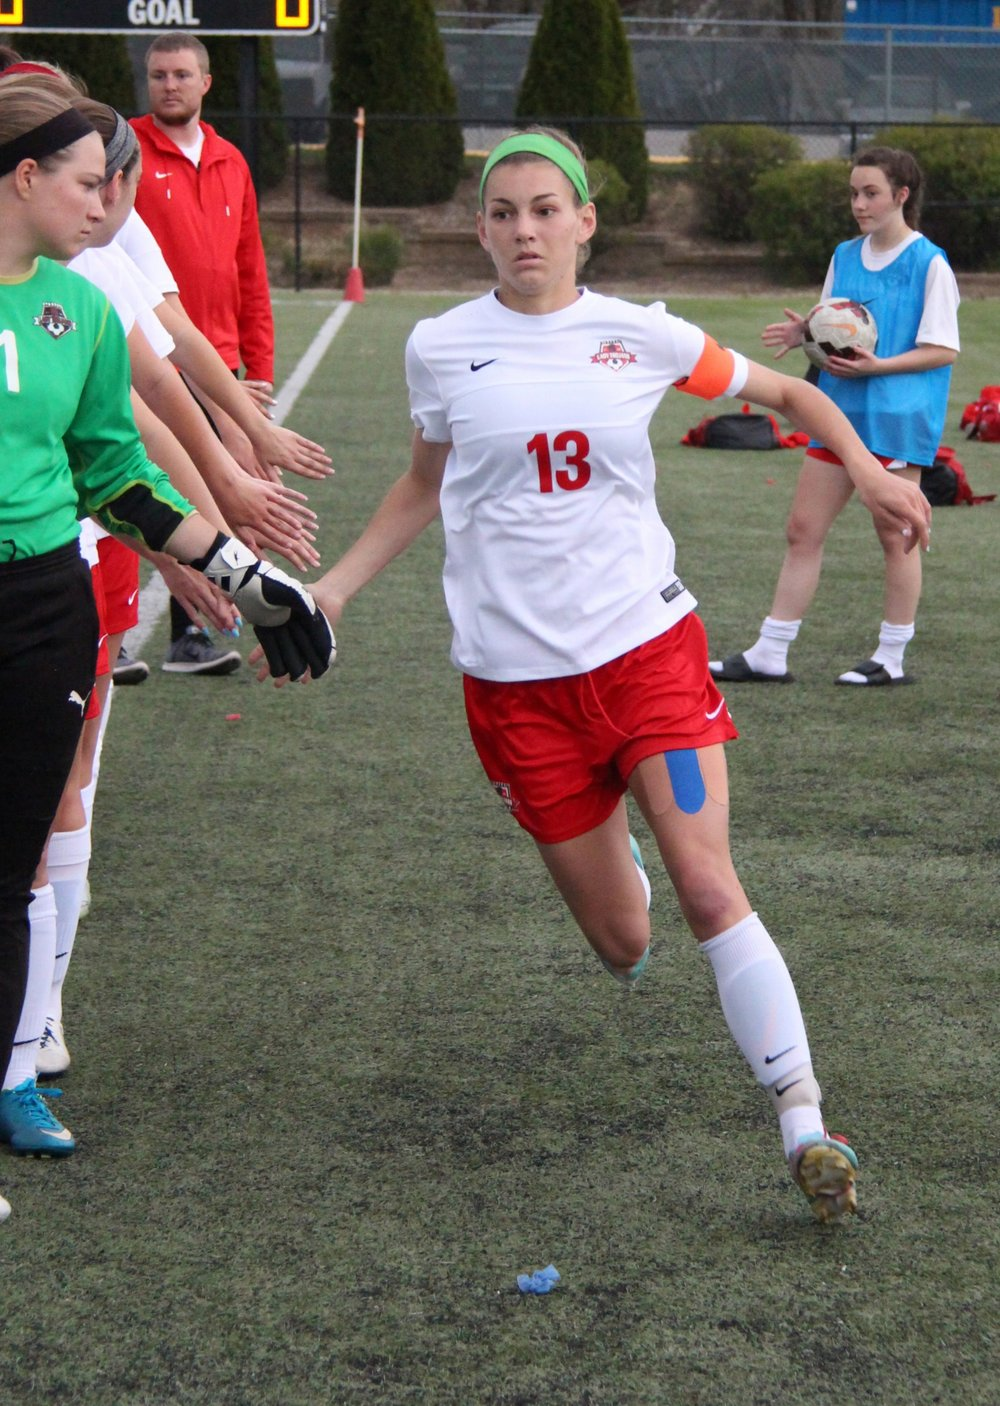 Citizen file photo Park Hill senior defender Jenna Winebrenner takes the field before a game earlier this season against St. Teresa's Academy at Park Hill District Soccer Complex in Riverside, Mo. Winebrenner finished her career as a four-time all-state performer for the Trojans.